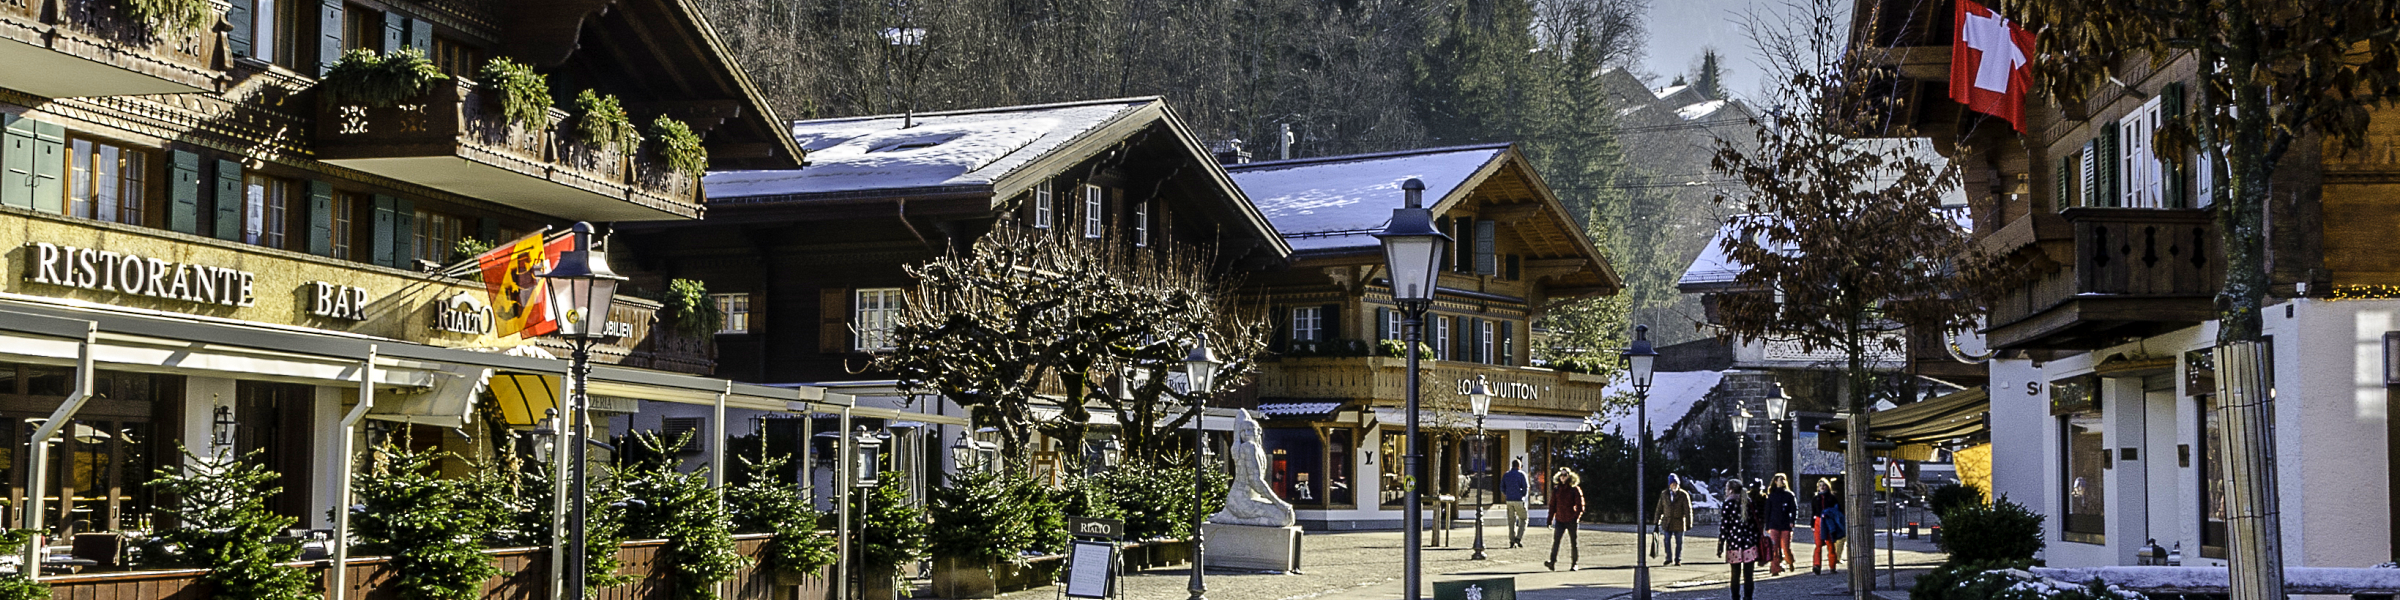 Main street of Gstaad